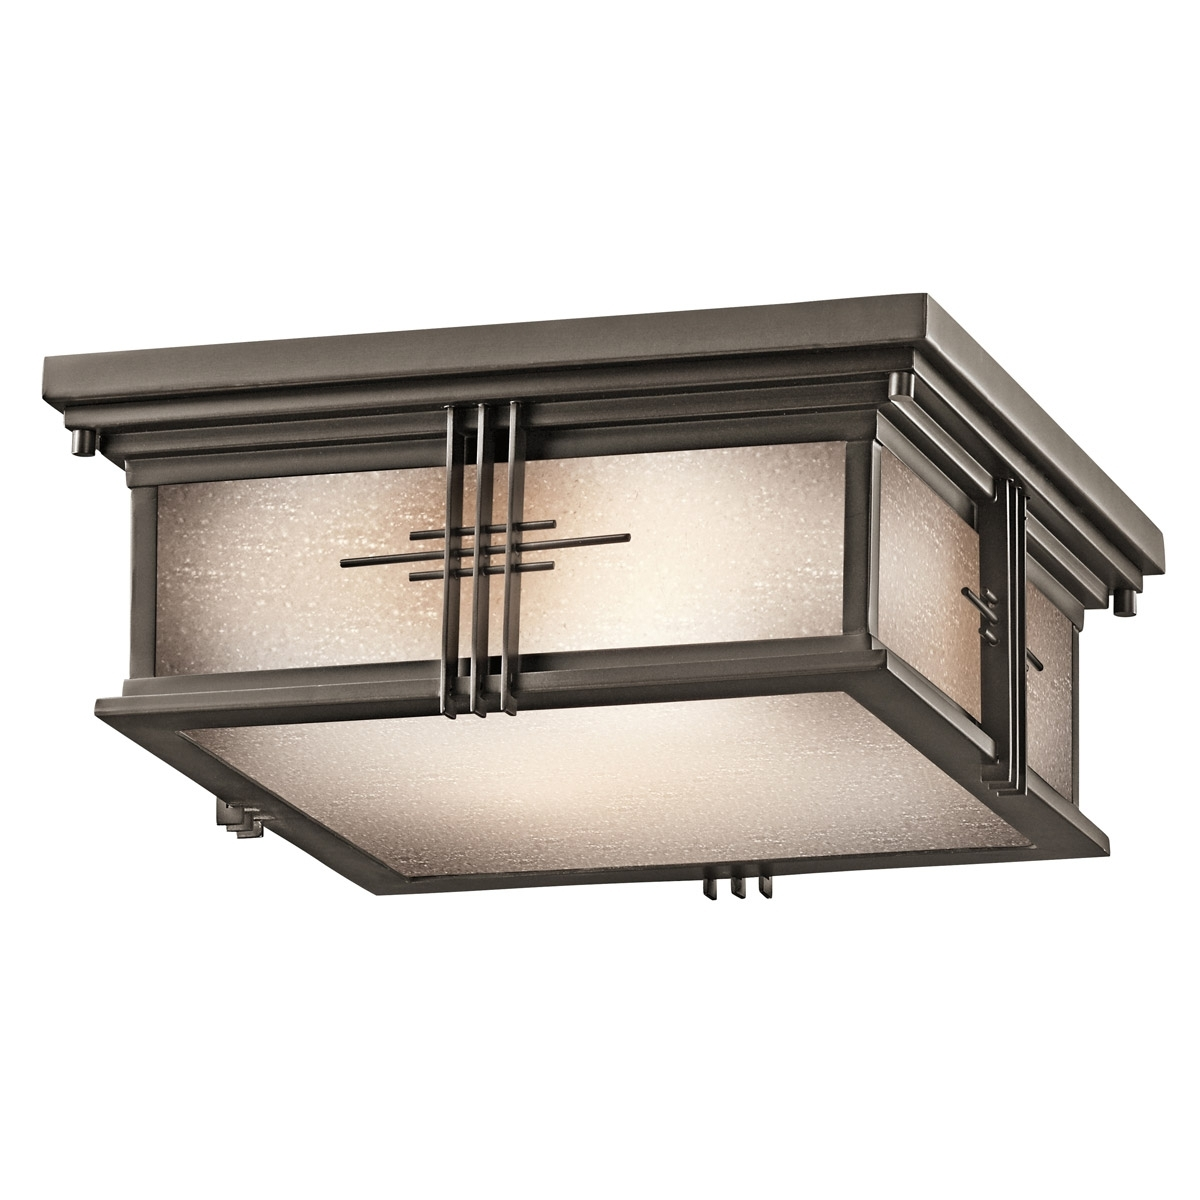 Decorative Outdoor Ceiling Lights In Most Up To Date 49164Oz Portman Square Outdoor Flush Mount Ceiling Fixture (Gallery 8 of 20)